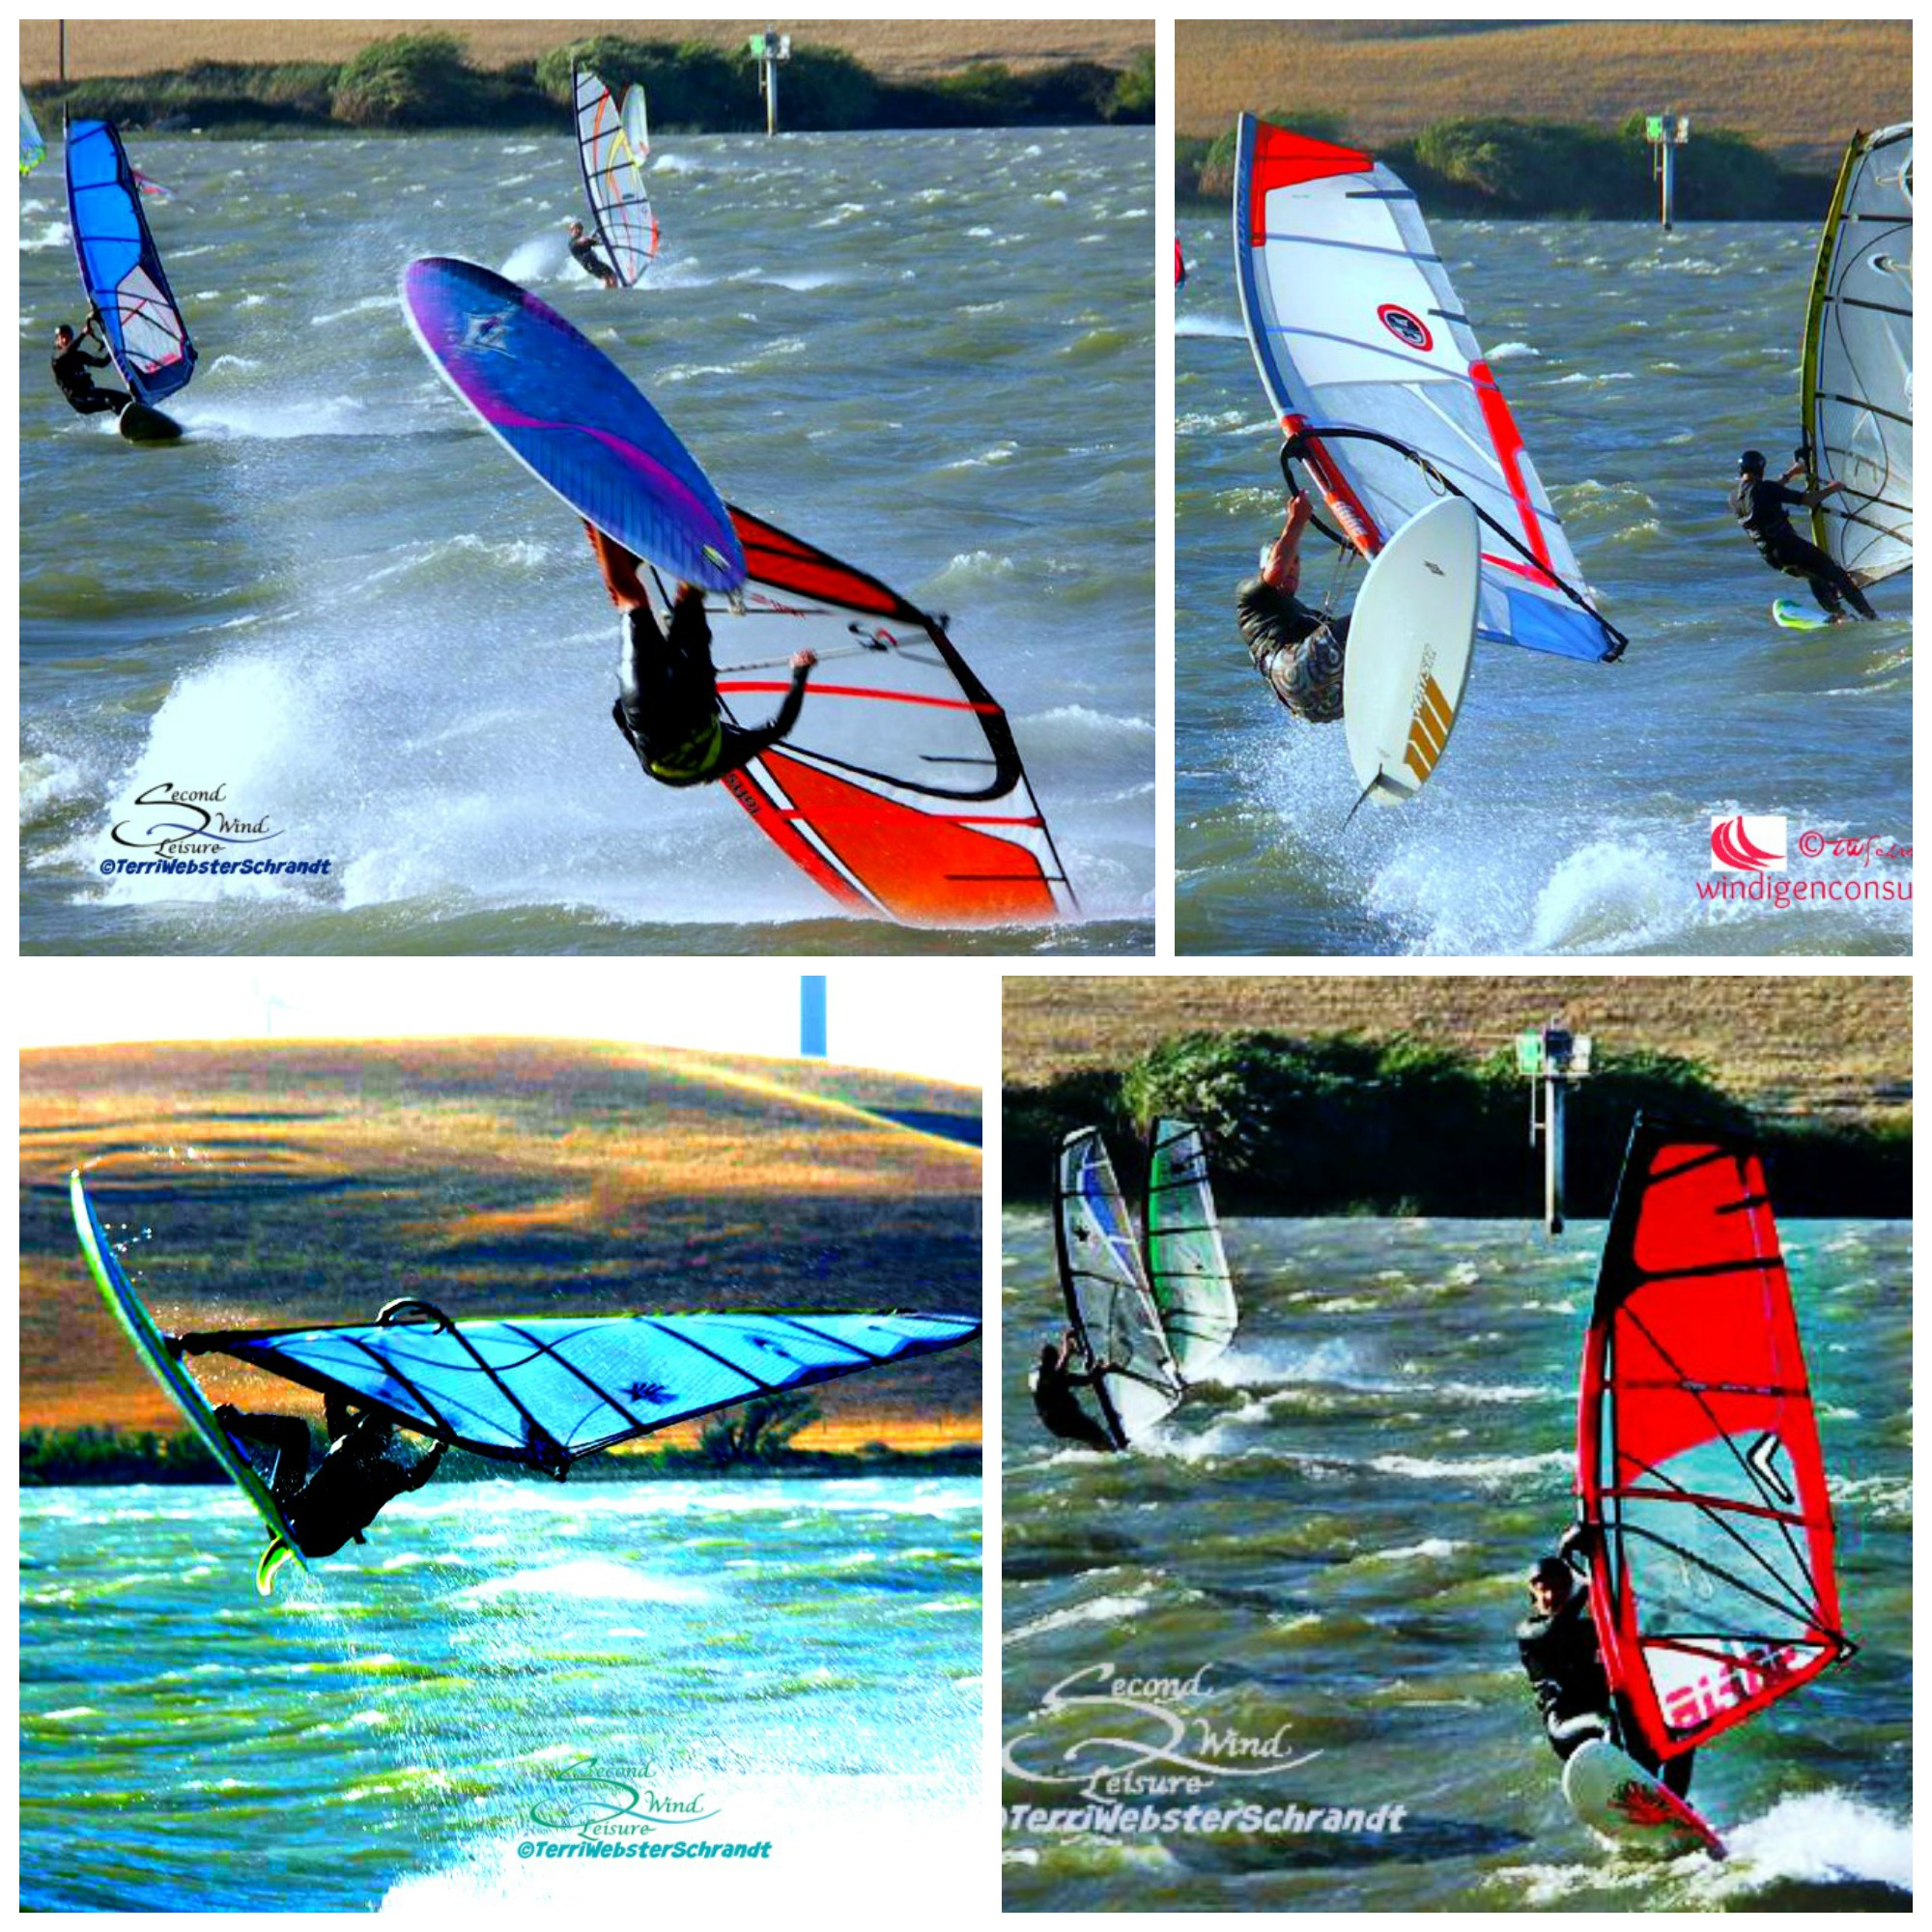 Windsurf-Collage